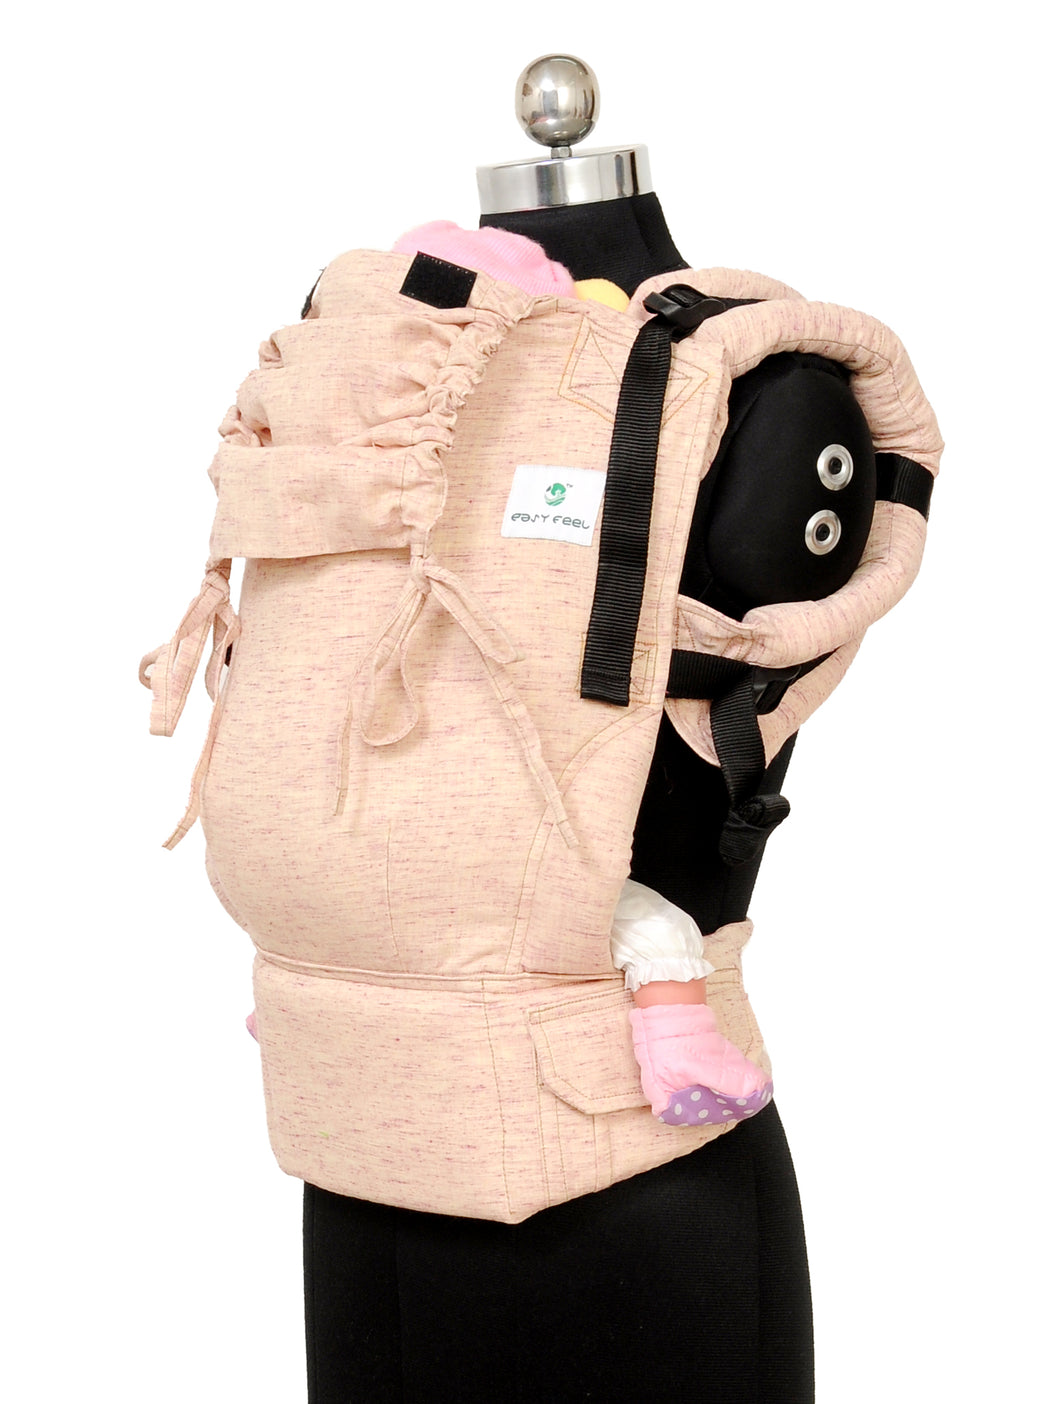 Toddler Soft Structured Carrier - Lavender